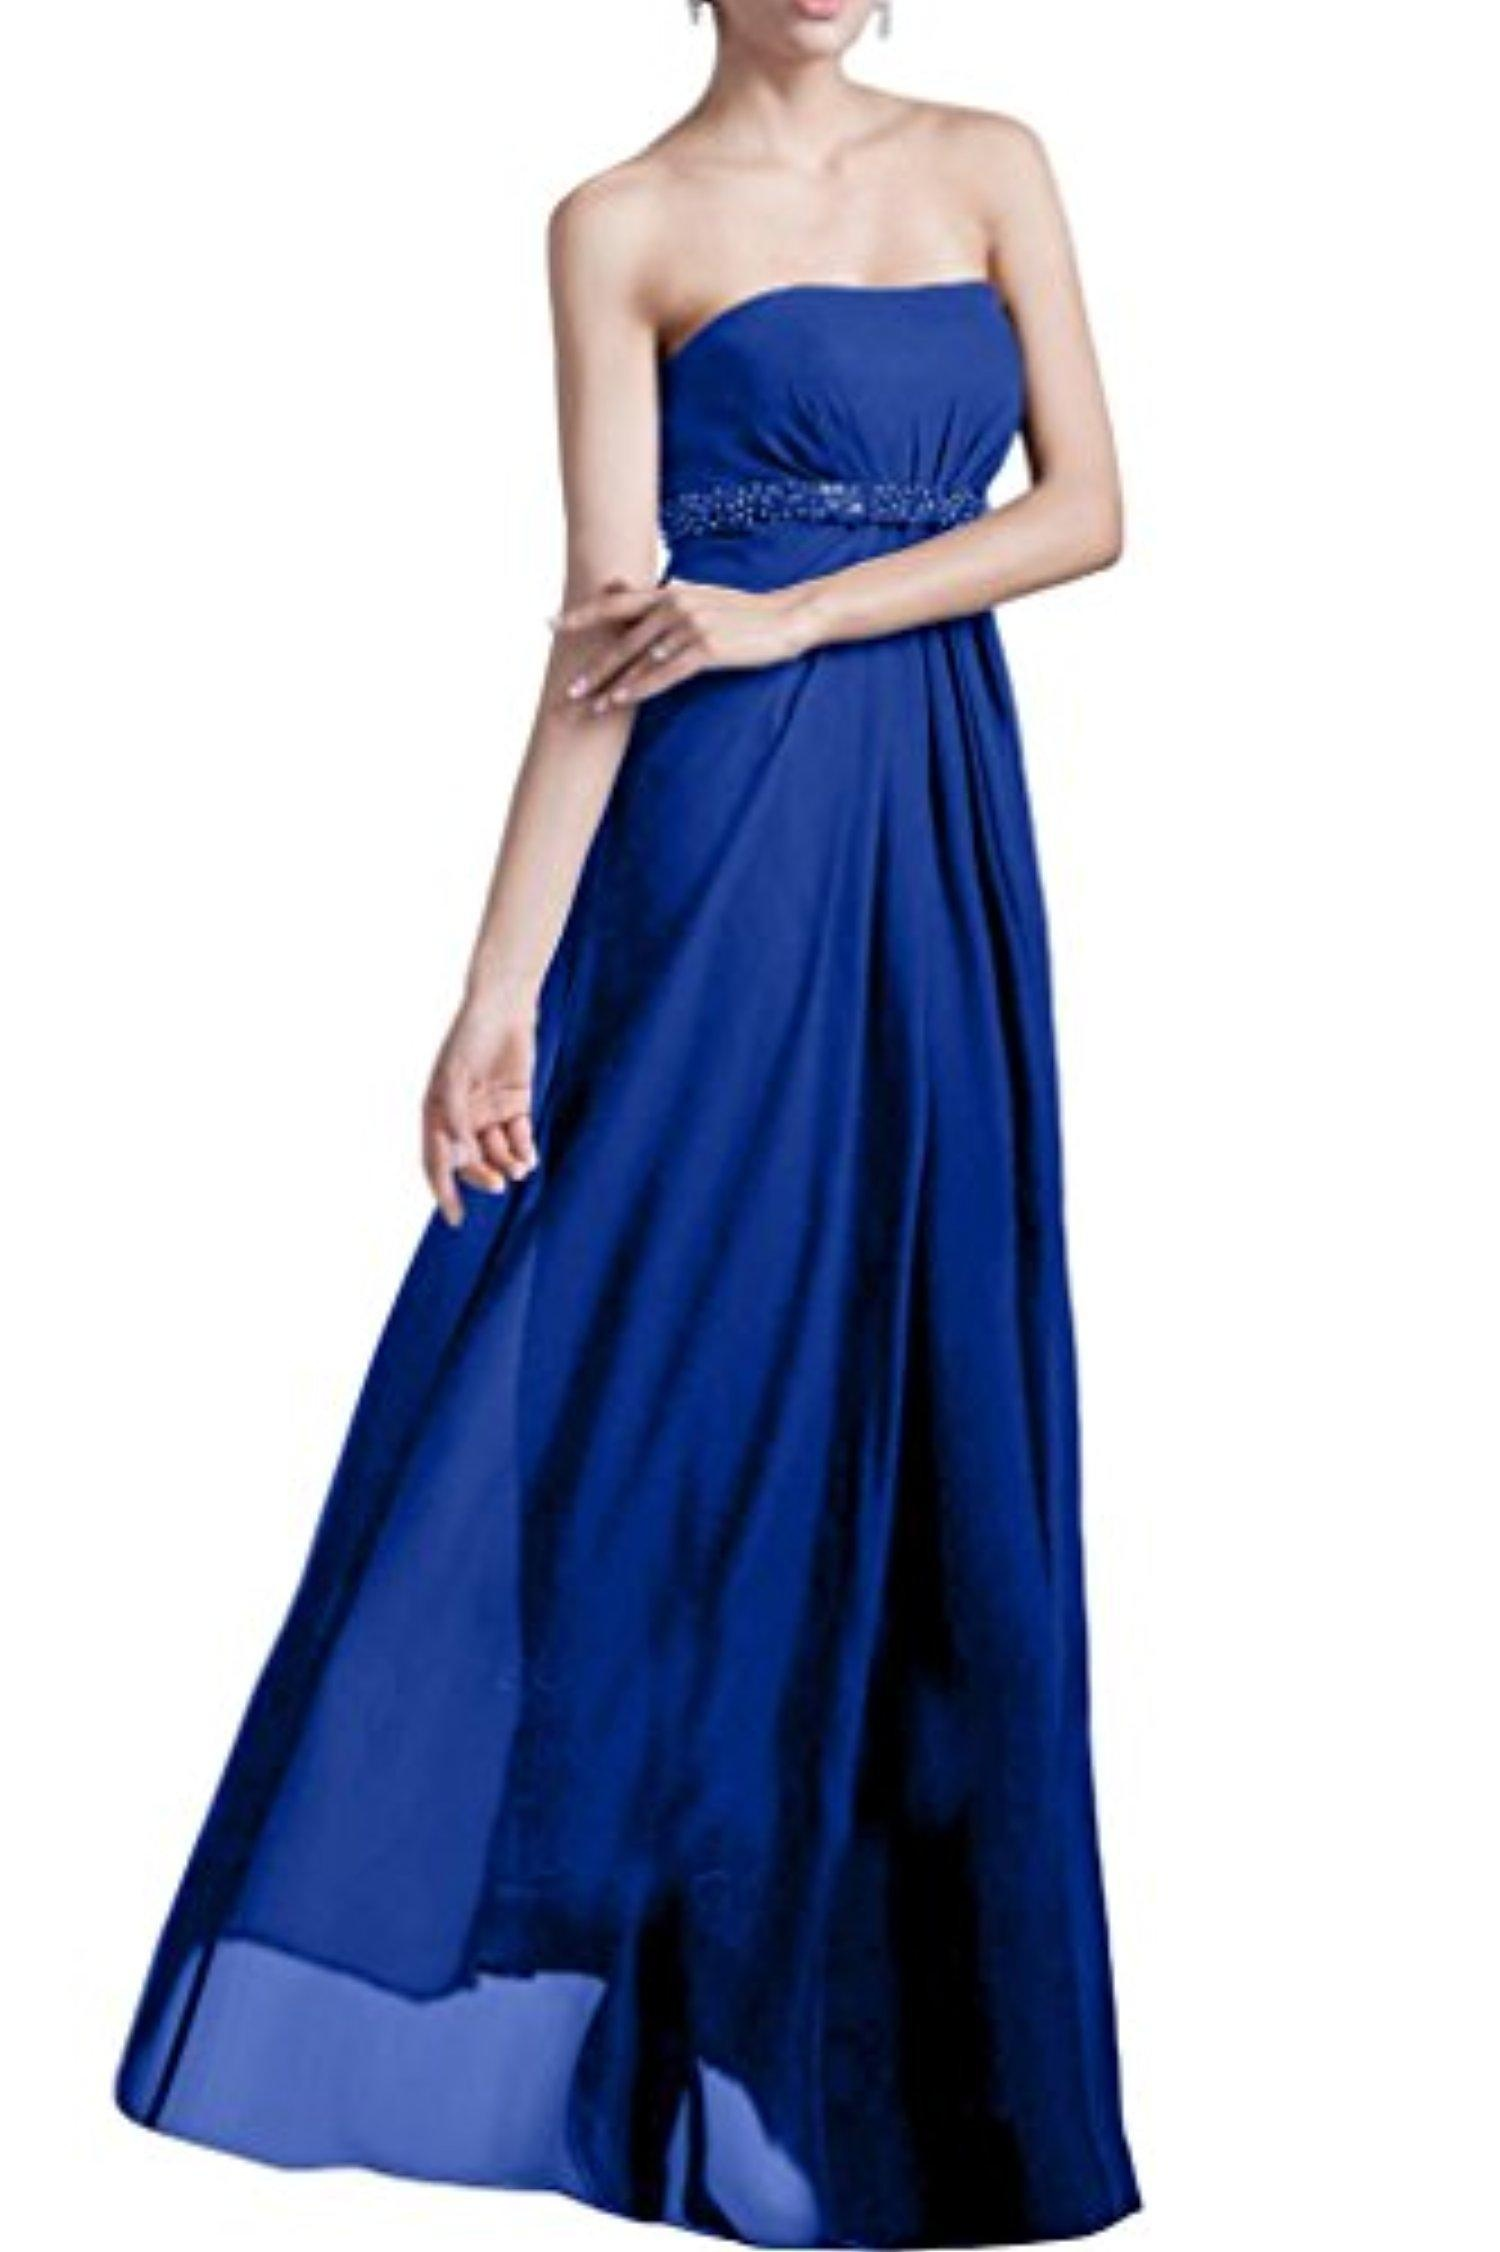 MILANO BRIDE Nifty Wedding Party Dress Prom Gown Strapless A-line Chiffon Beads-10-Royal Blue